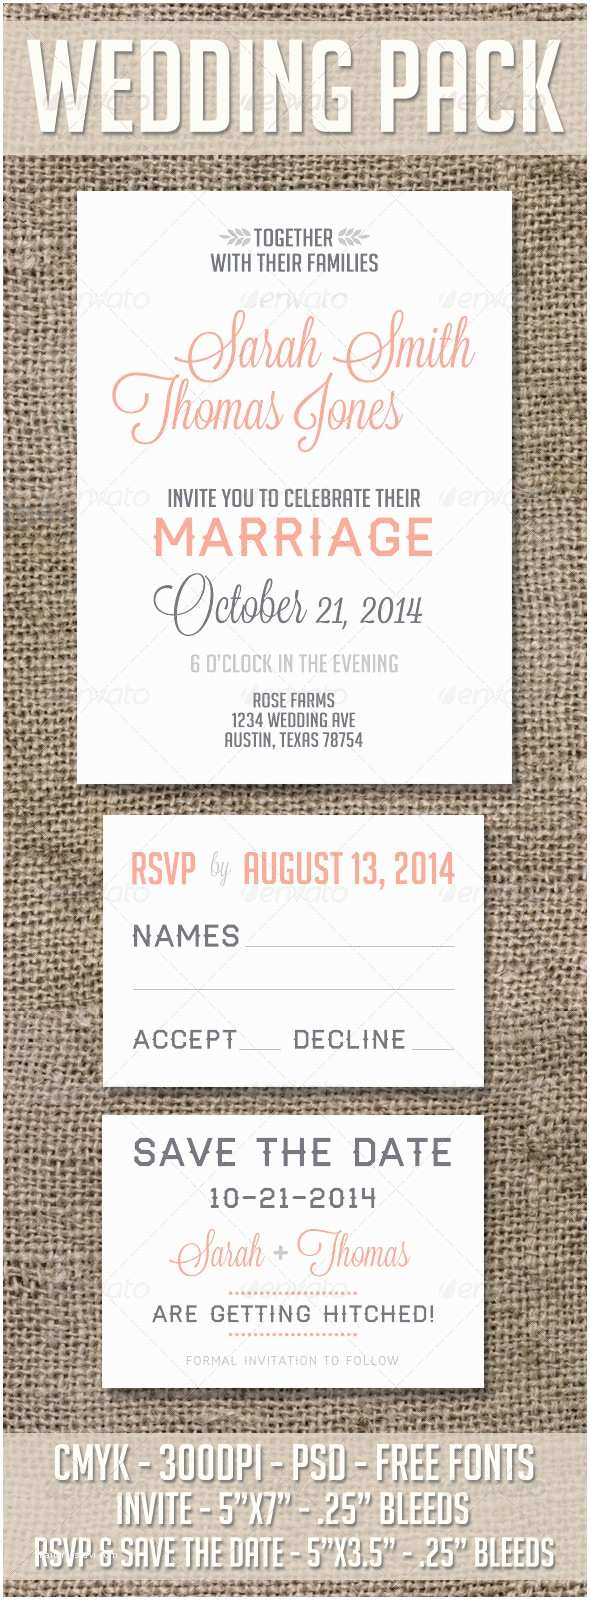 Save the Date and Wedding Invitation Packages Wedding and Save the Date Pack